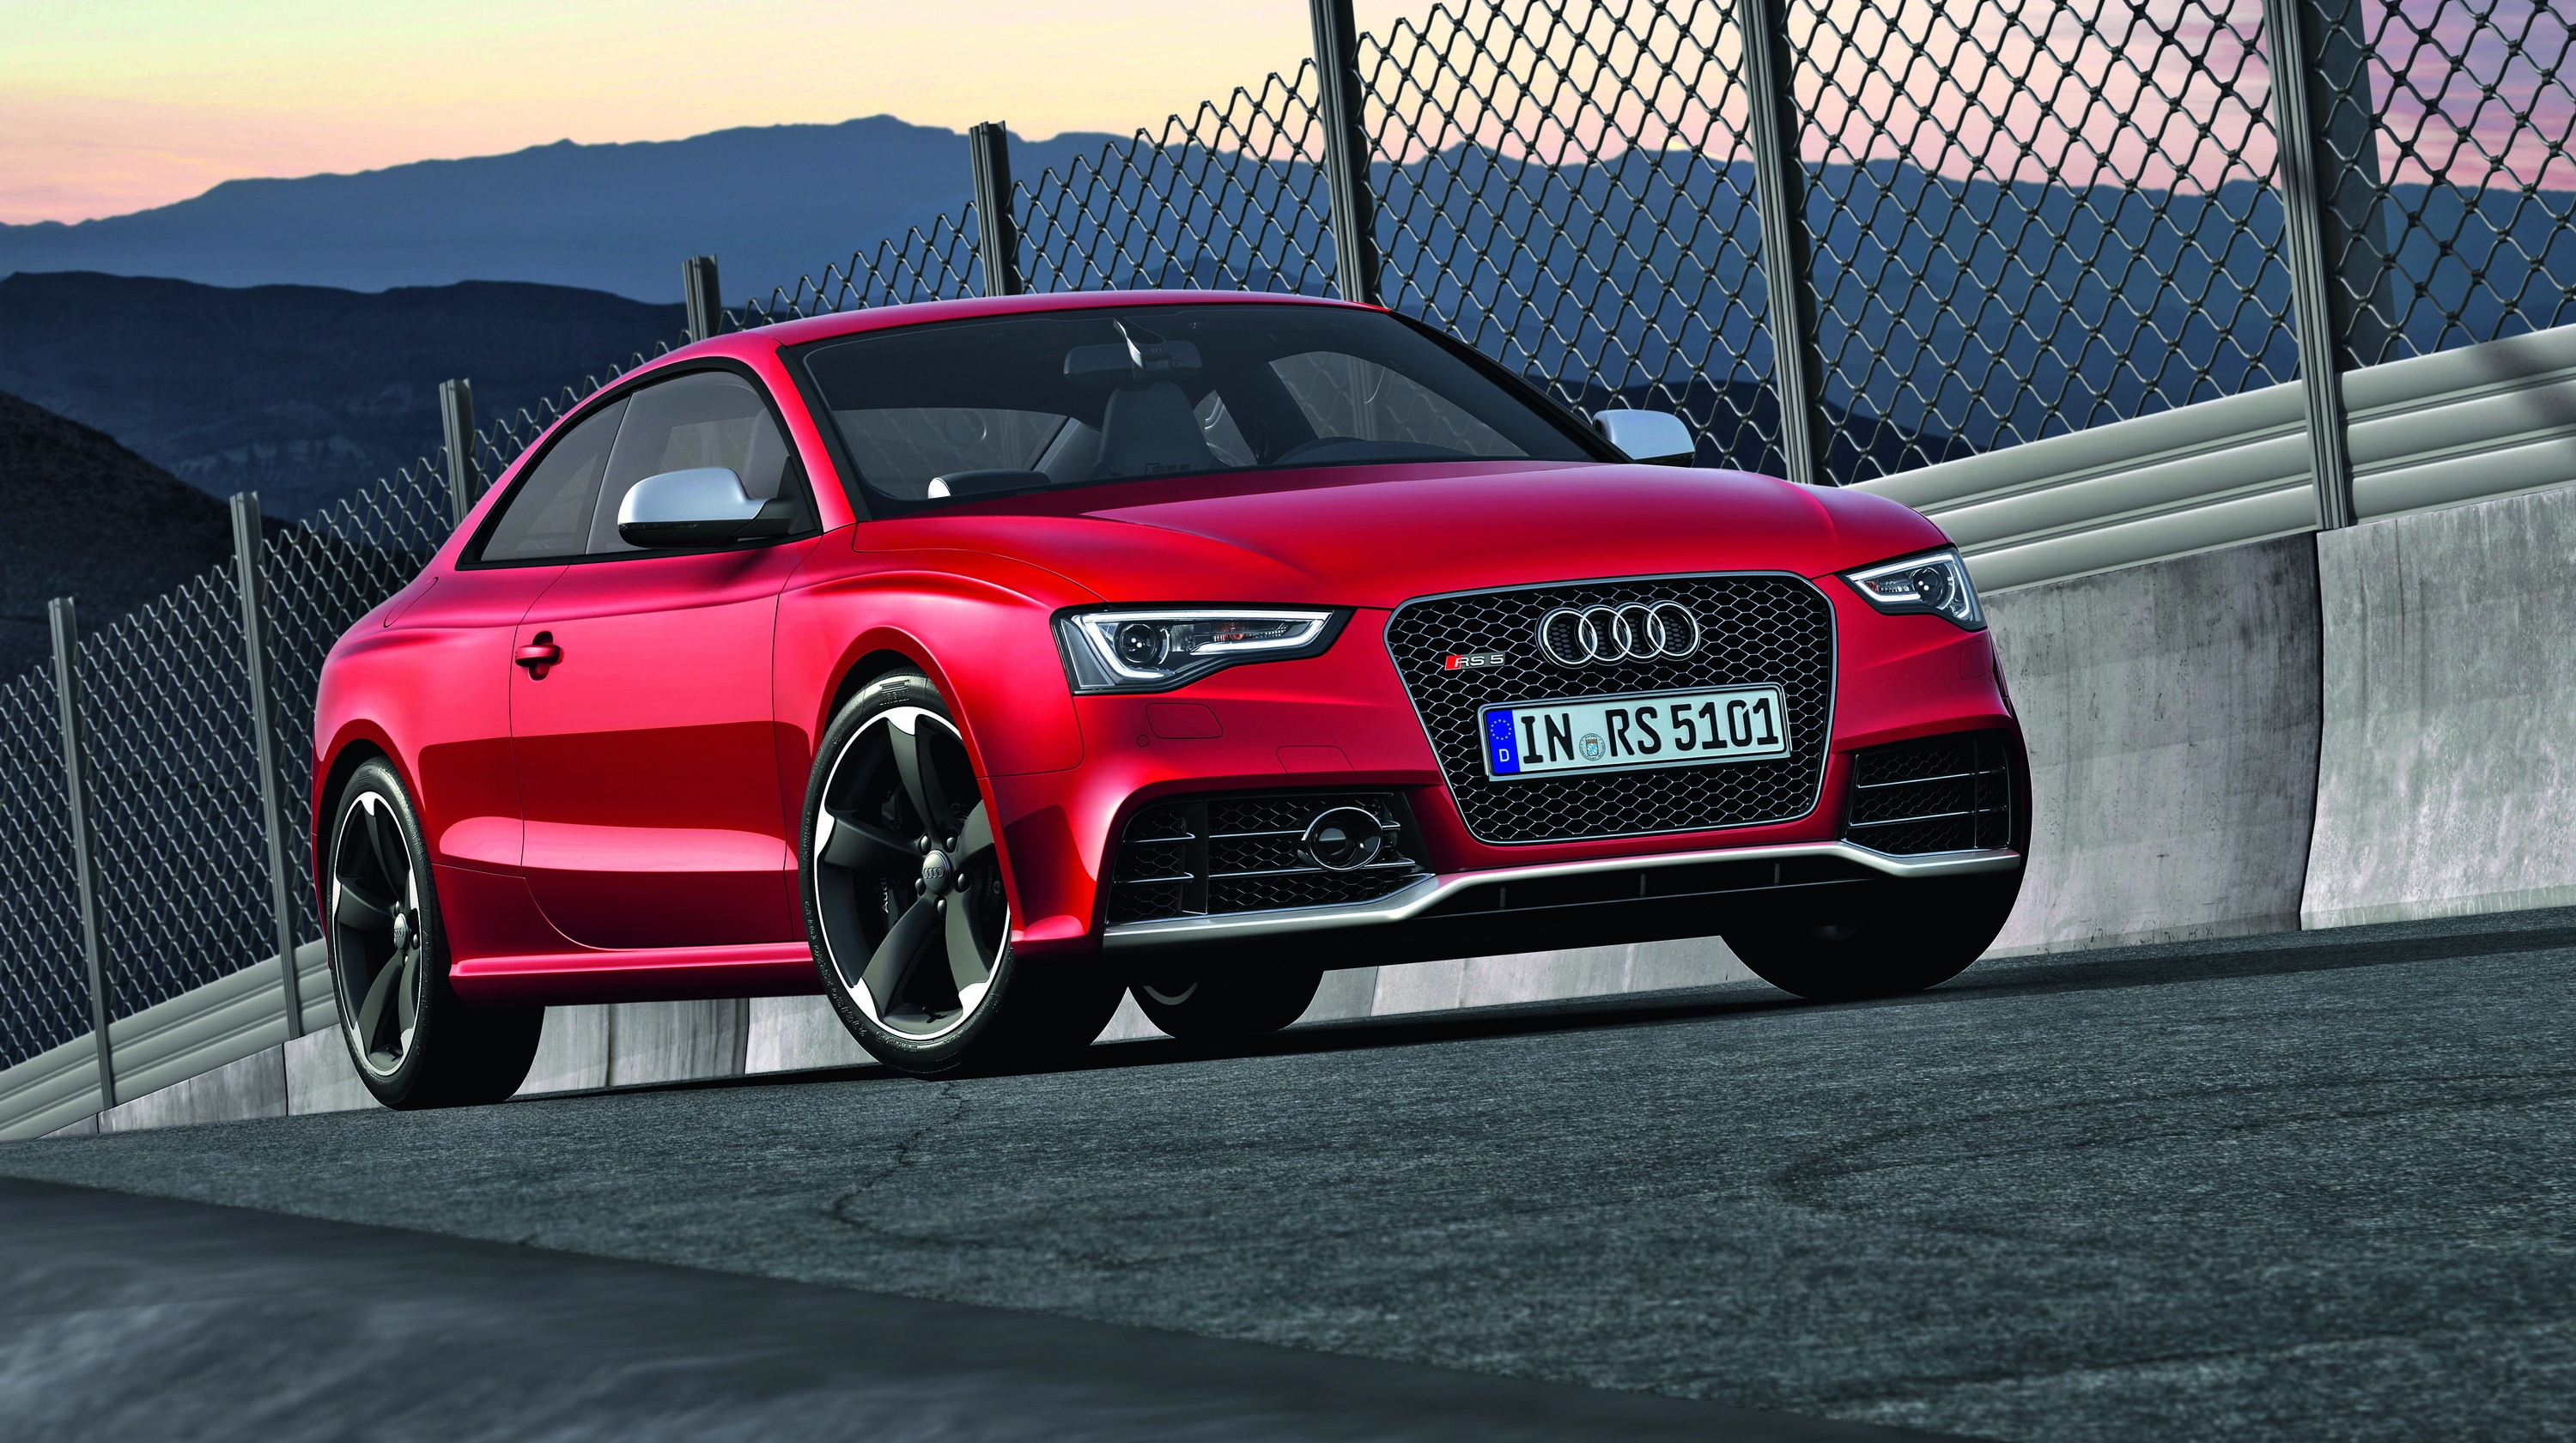 2014 Audi RS5 | Top Speed